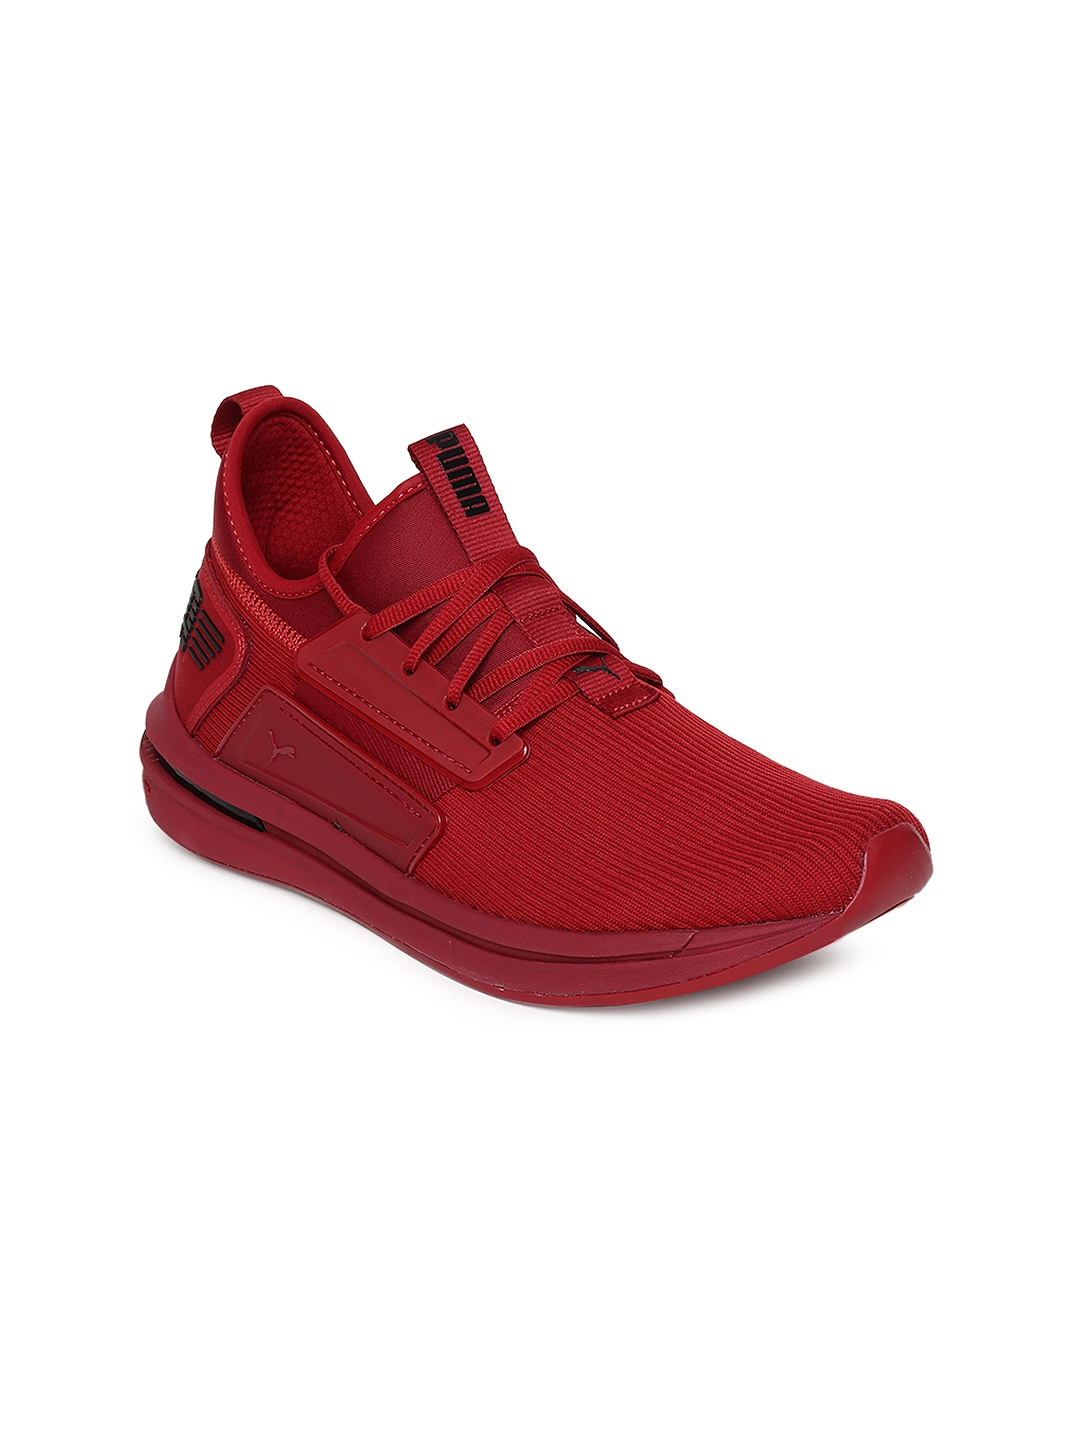 1992c80b8124 Buy Puma Men Red IGNITE Limitless SR Sneakers - Casual Shoes for Men ...